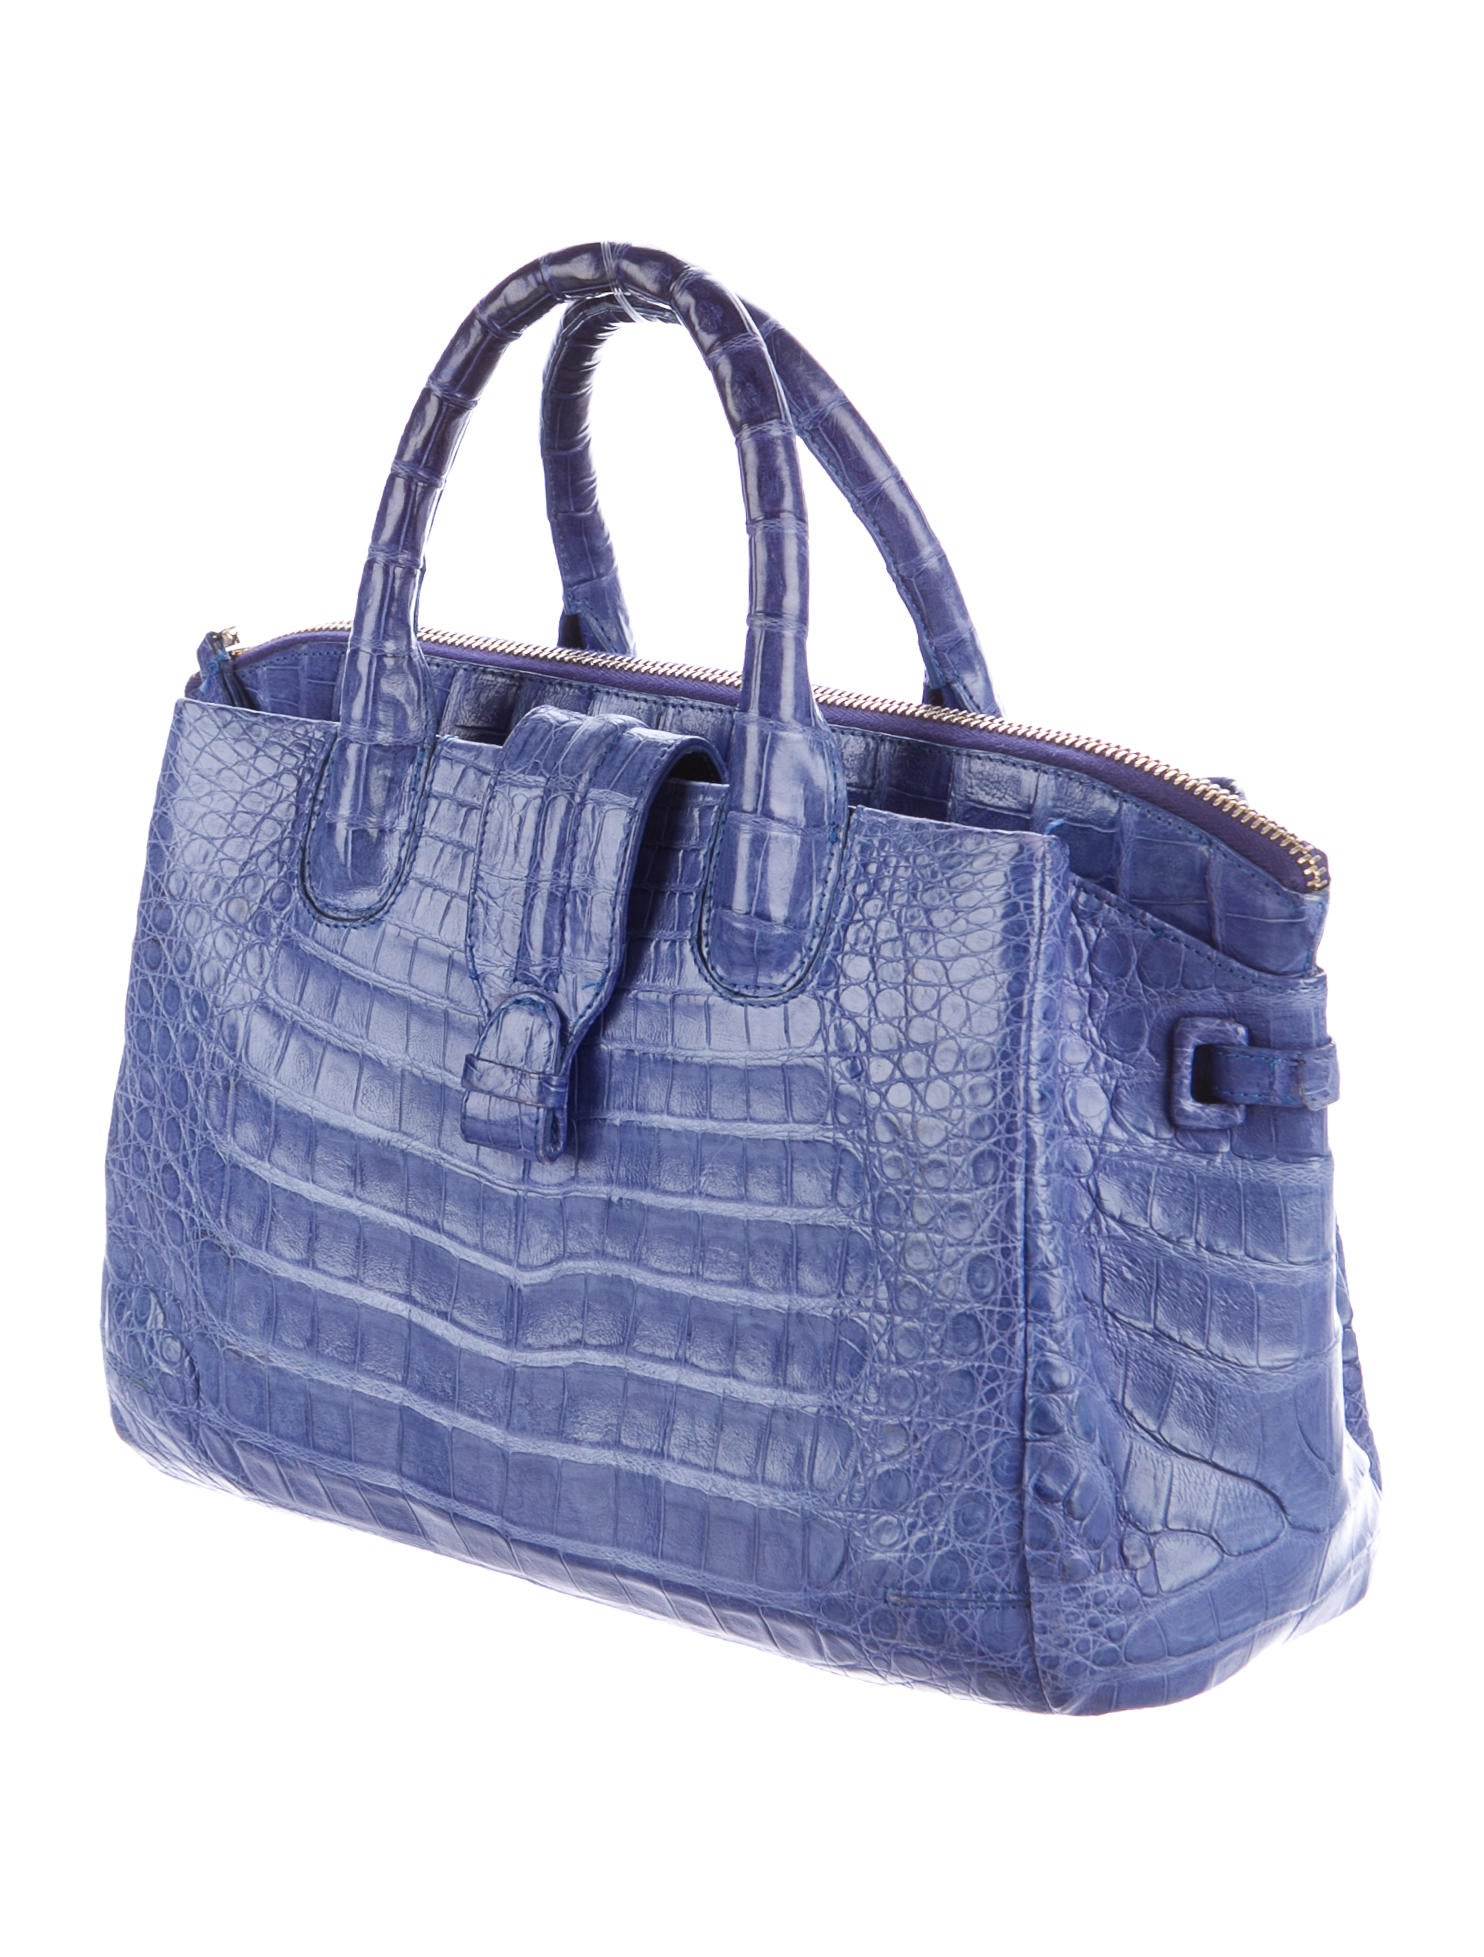 Nancy gonzalez crocodile shoulder tote handbags for Nancy gonzalez crocodile tote